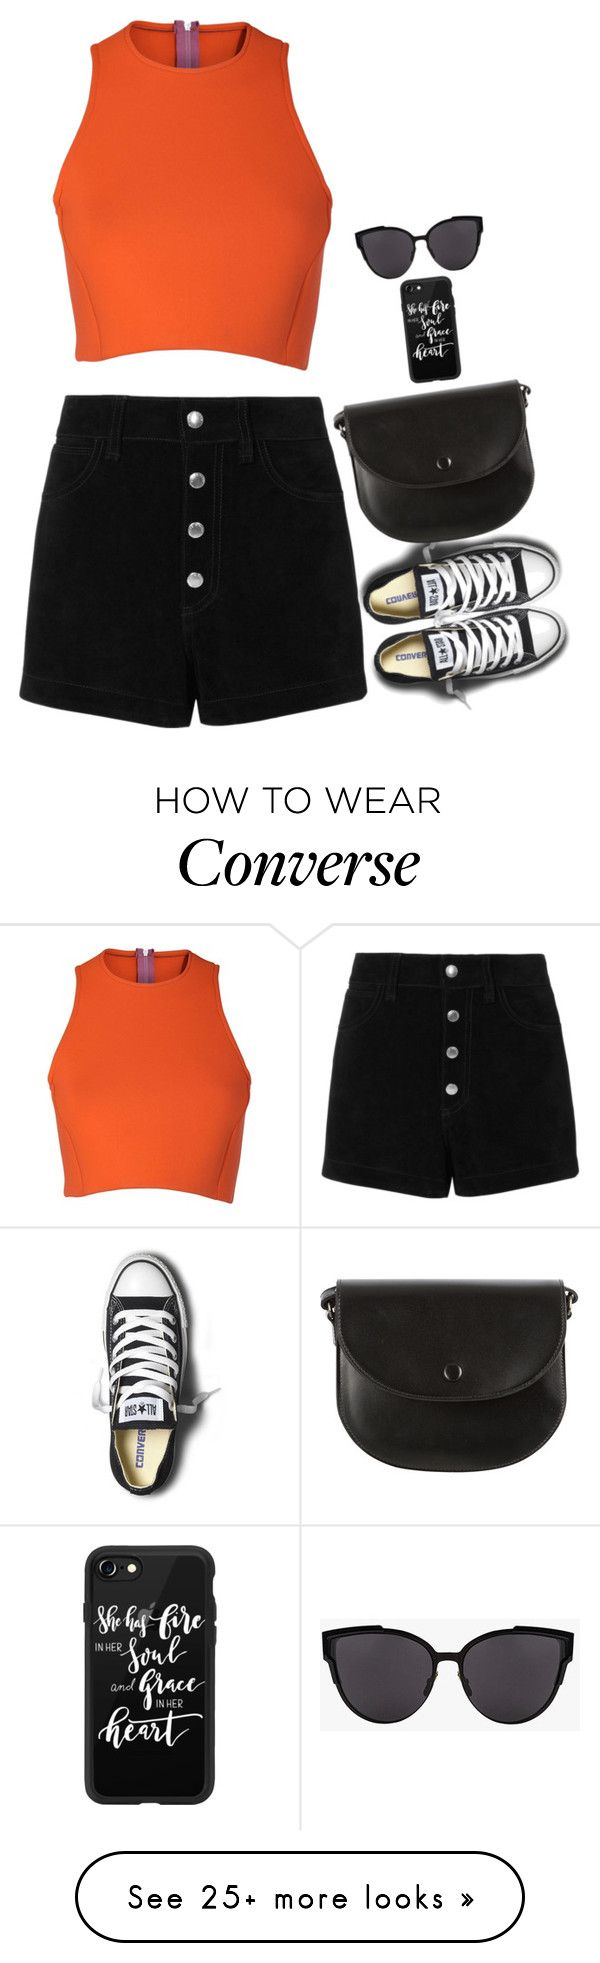 """Untitled #6773"" by miki006 on Polyvore featuring rag & bone/JEAN, Converse, Sydney-Davies and Casetify"